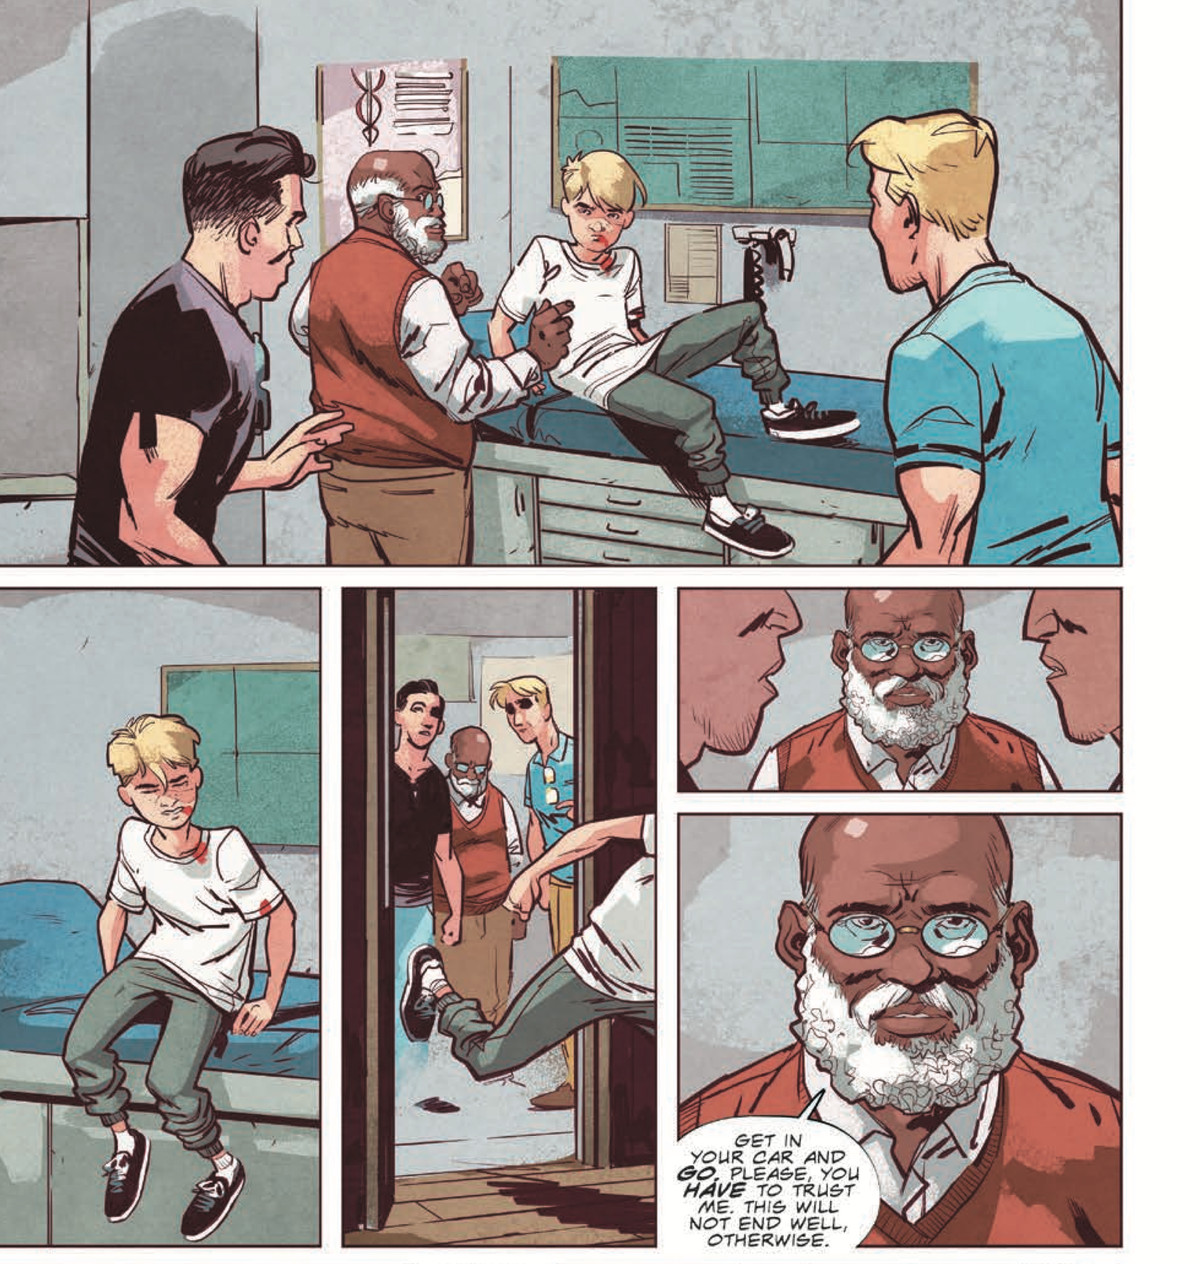 """Two men observe a critically injured teen boy sit up from a doctor's examination table and run out the door. """"Get in your car and go,"""" the doctor tells them. """"Please, you have to trust me. This will not end well, otherwise,"""" in Stillwater #1, Image Comics (2020)."""